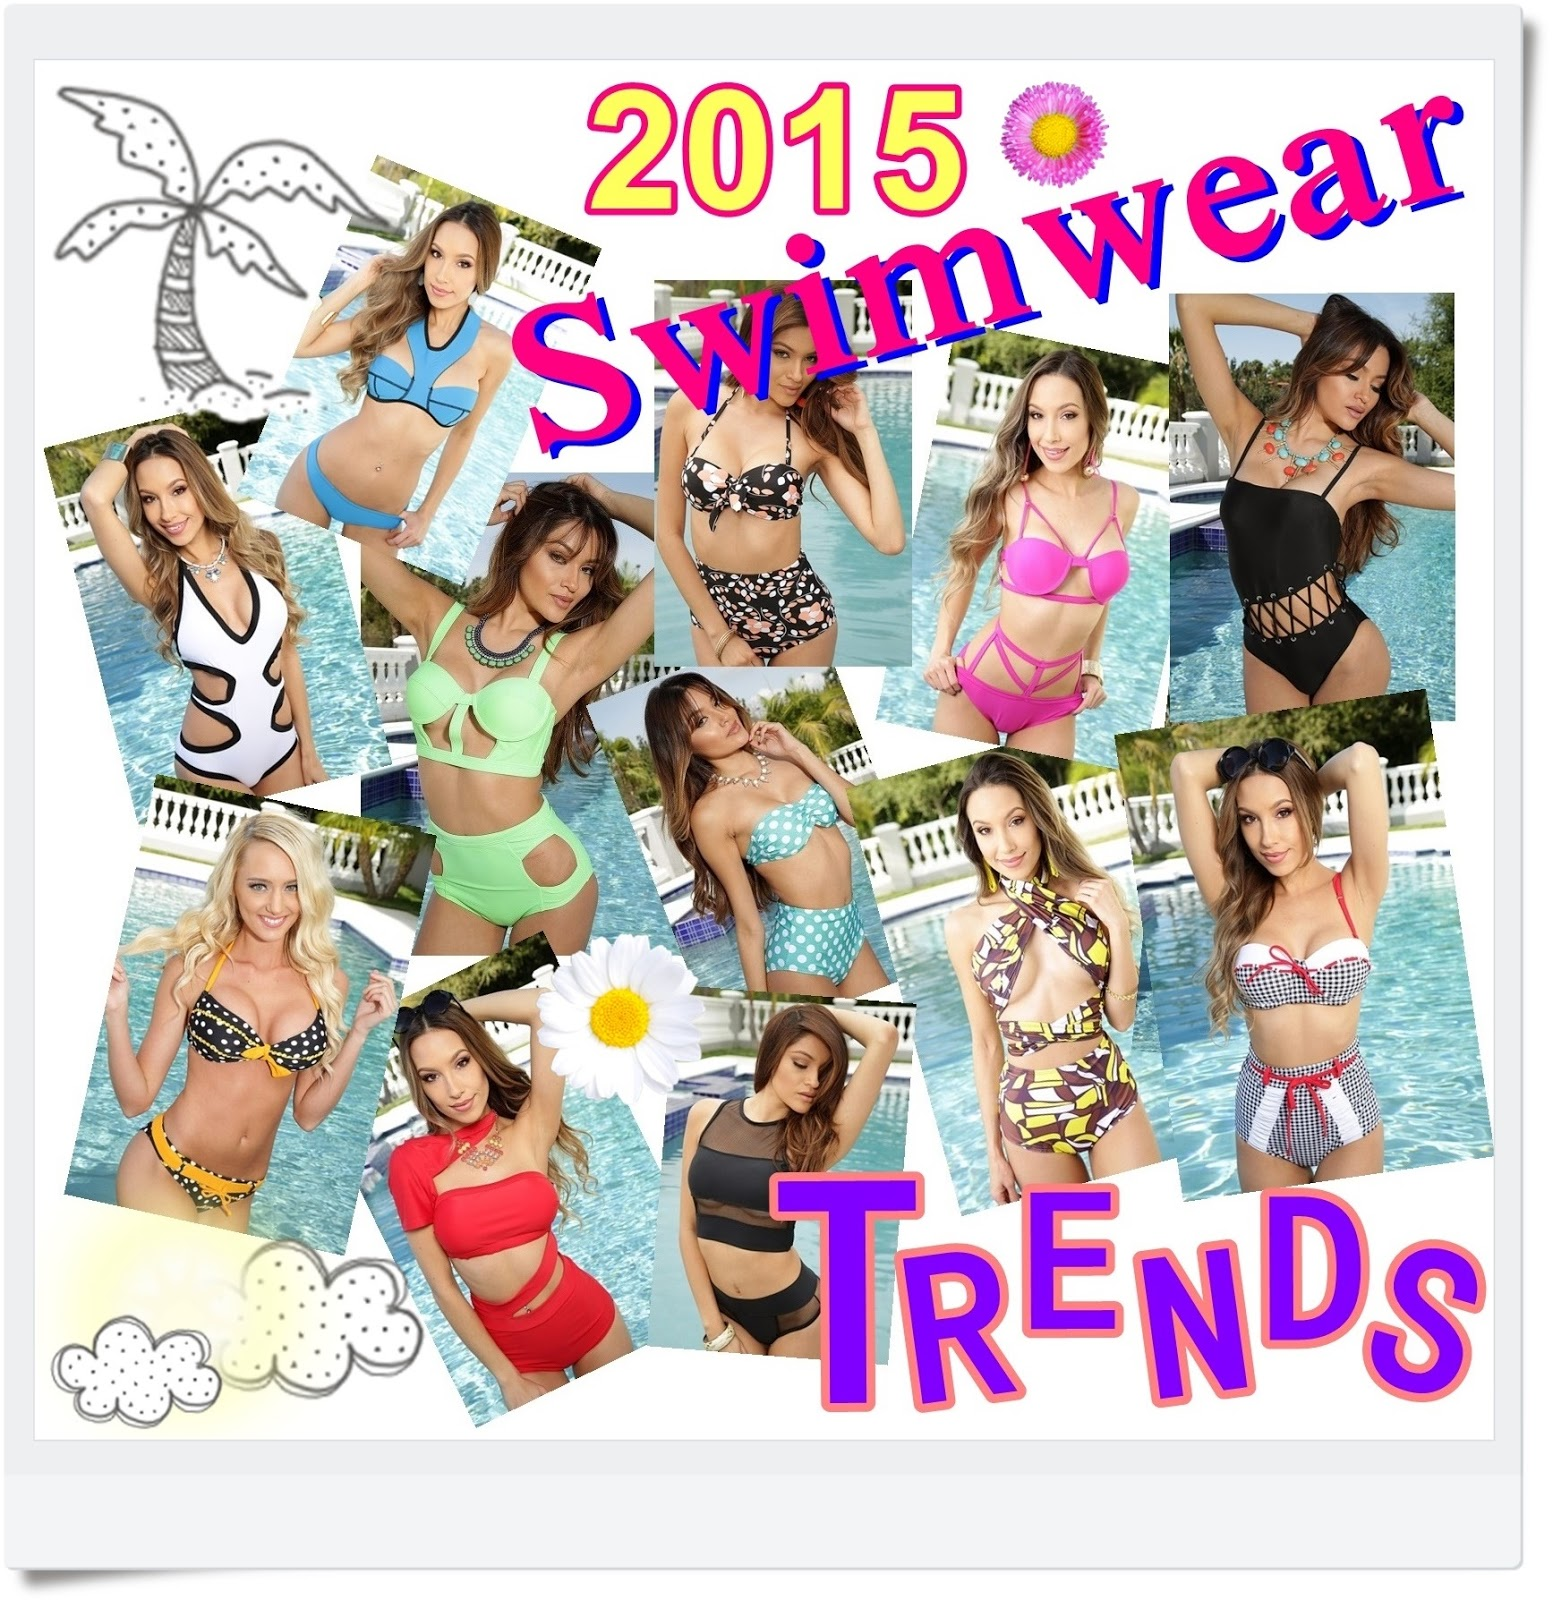 new swimwear trends